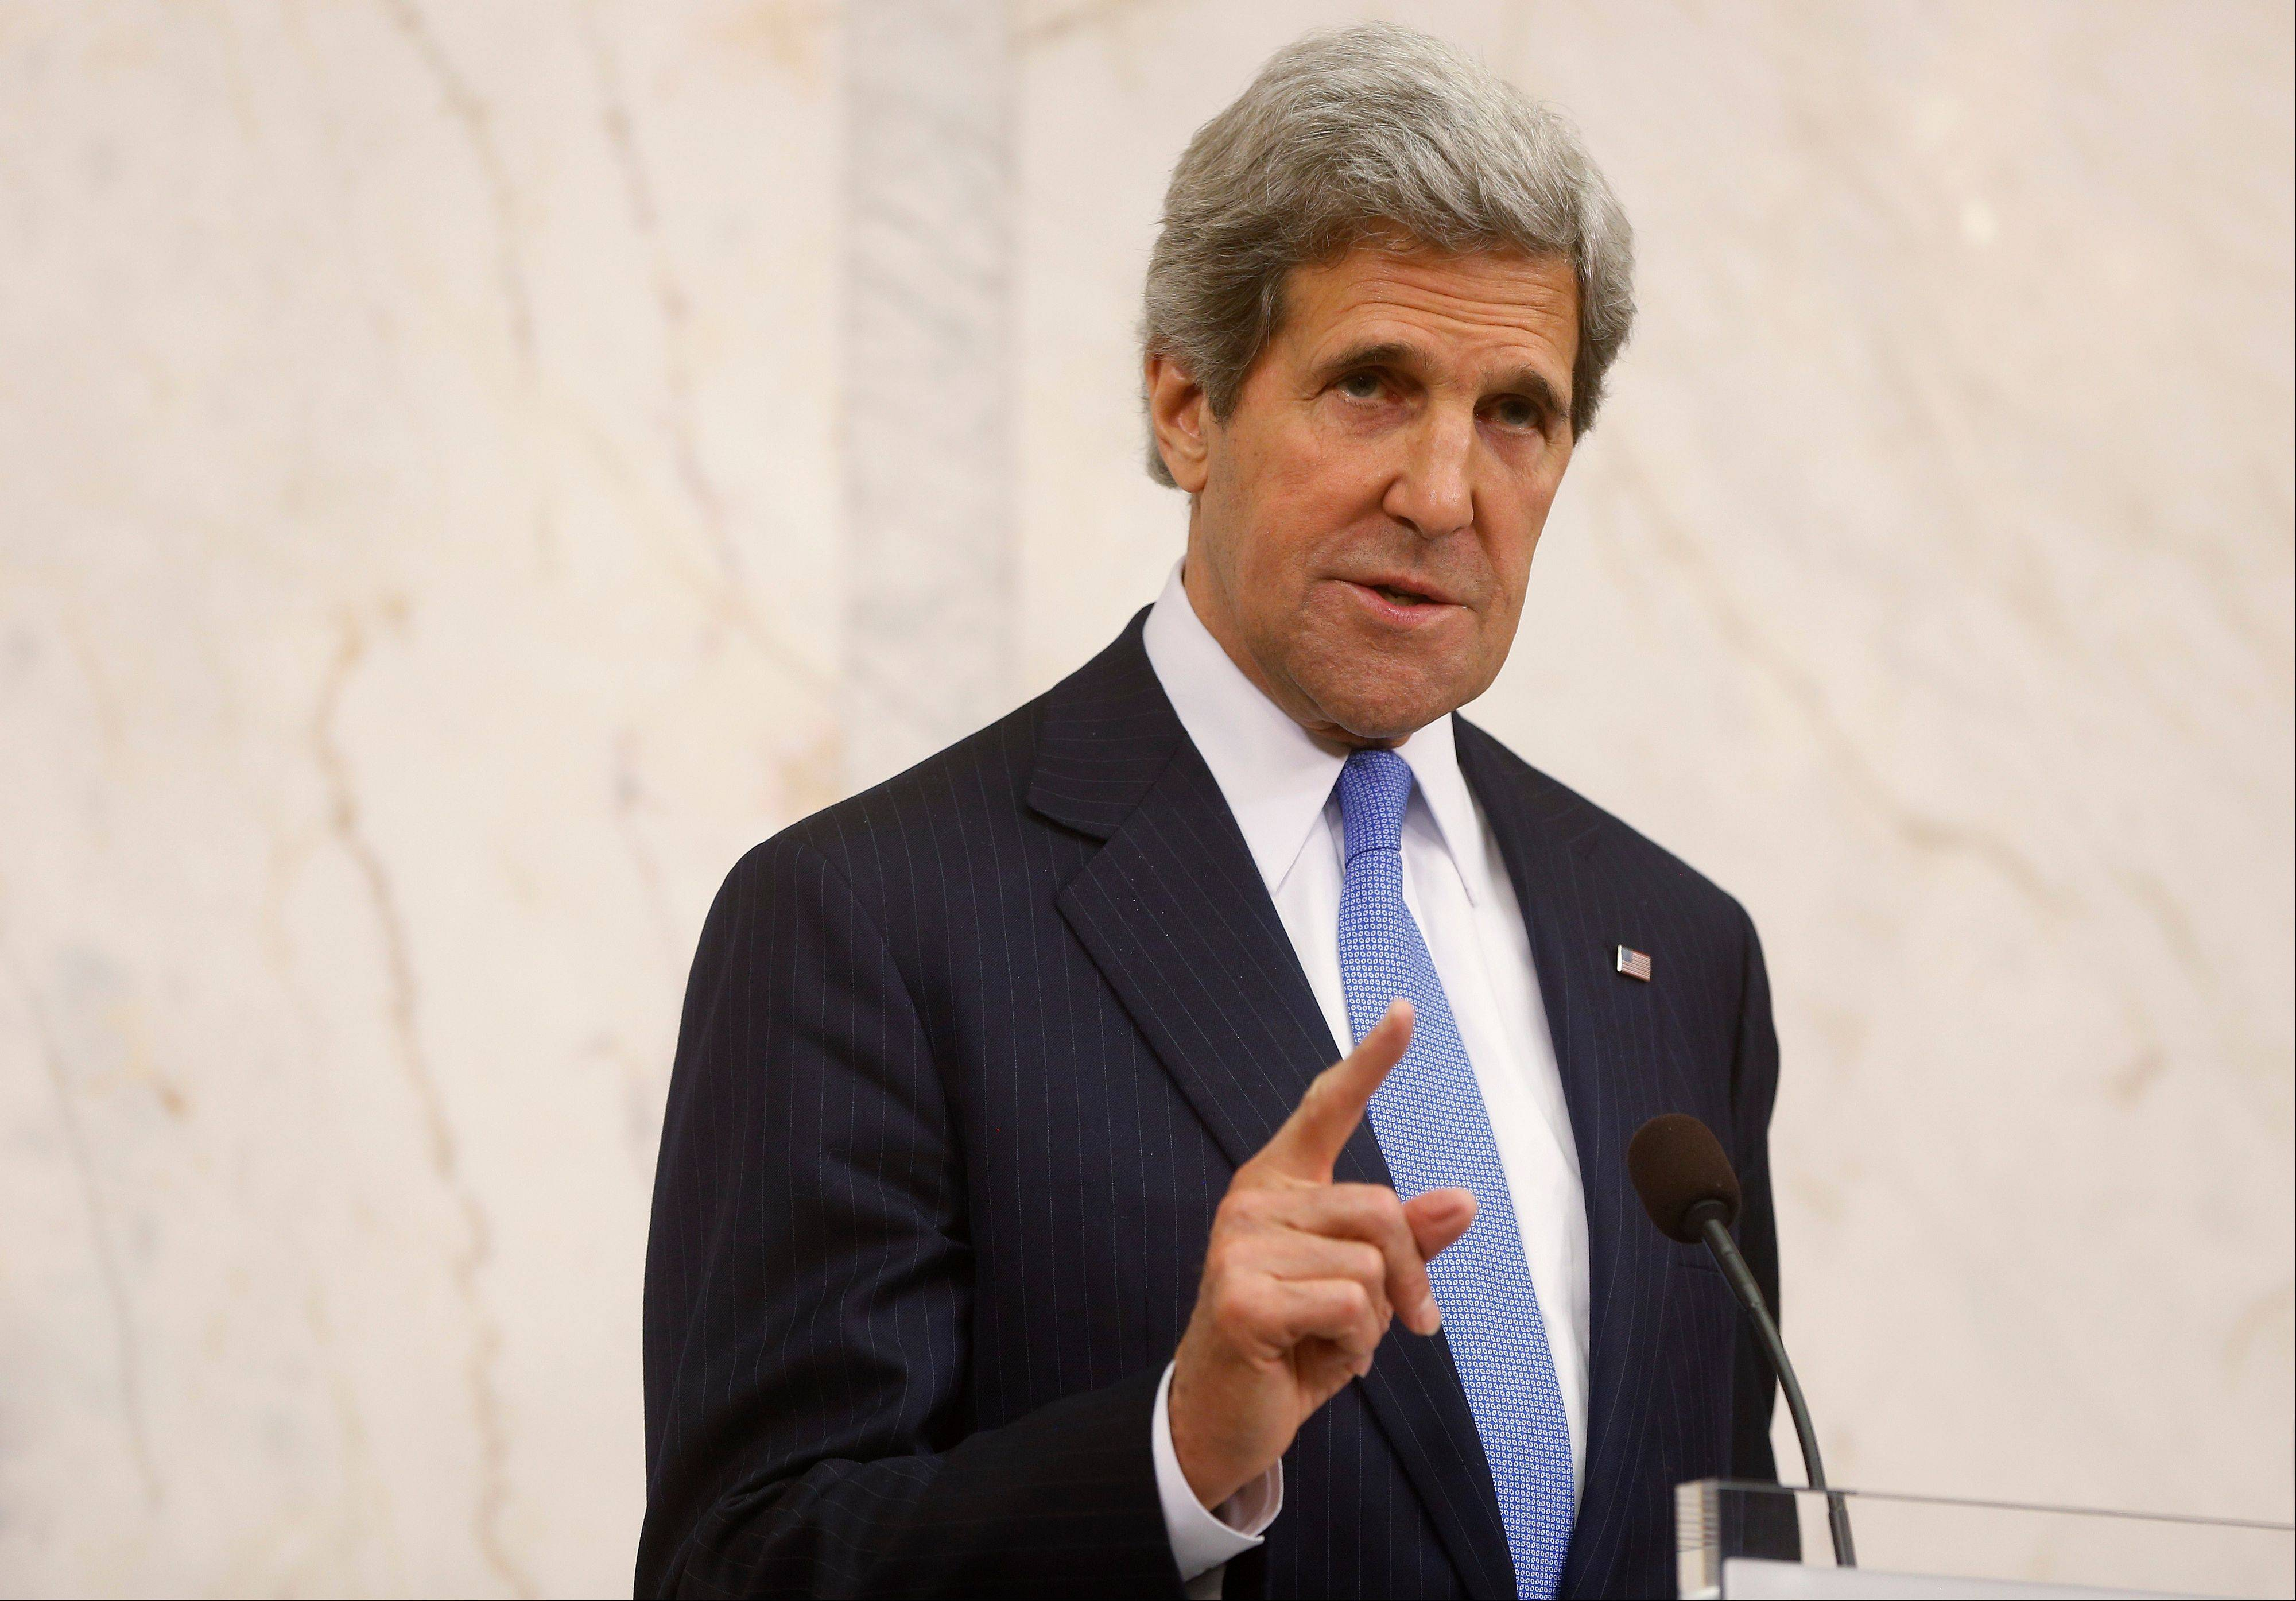 U.S. Secretary of State John Kerry issued a stern warning Tuesday to Syria's government, saying that new help will be given to opposition forces should President Bashar Assad's regime decide to back out of upcoming negotiations aimed at ending Syria's two-year war.